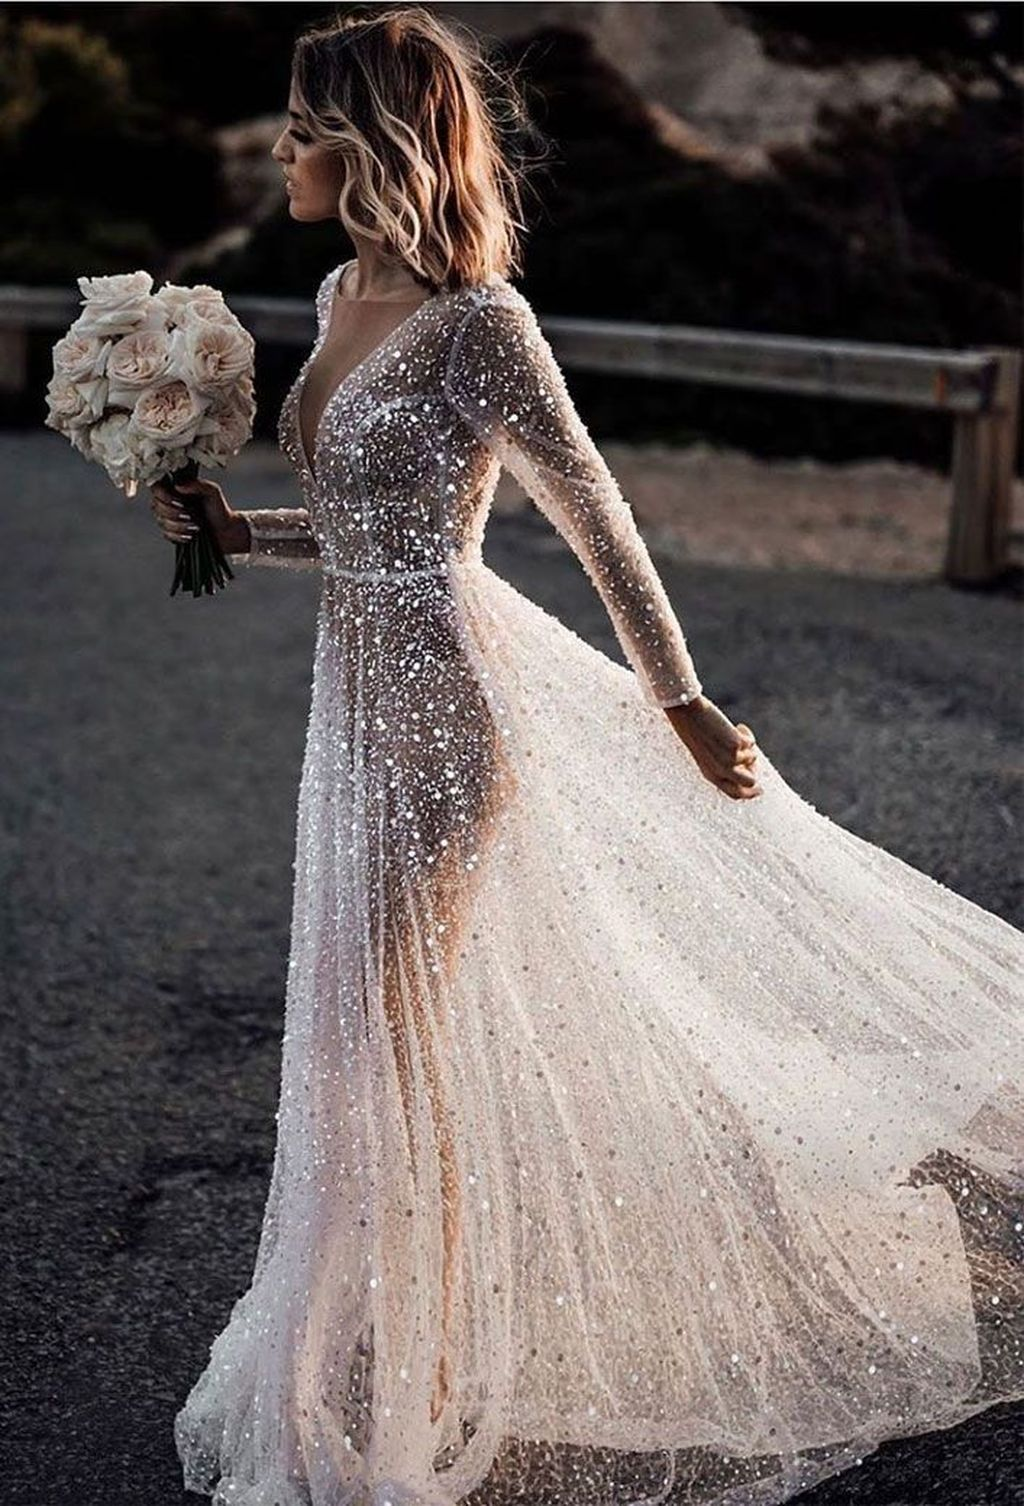 Icolorwrap Com Nbspthis Website Is For Sale Nbspicolorwrap Resources And Information In 2020 Affordable Bridesmaid Dresses Beautiful Wedding Dresses Wedding Dress Long Sleeve